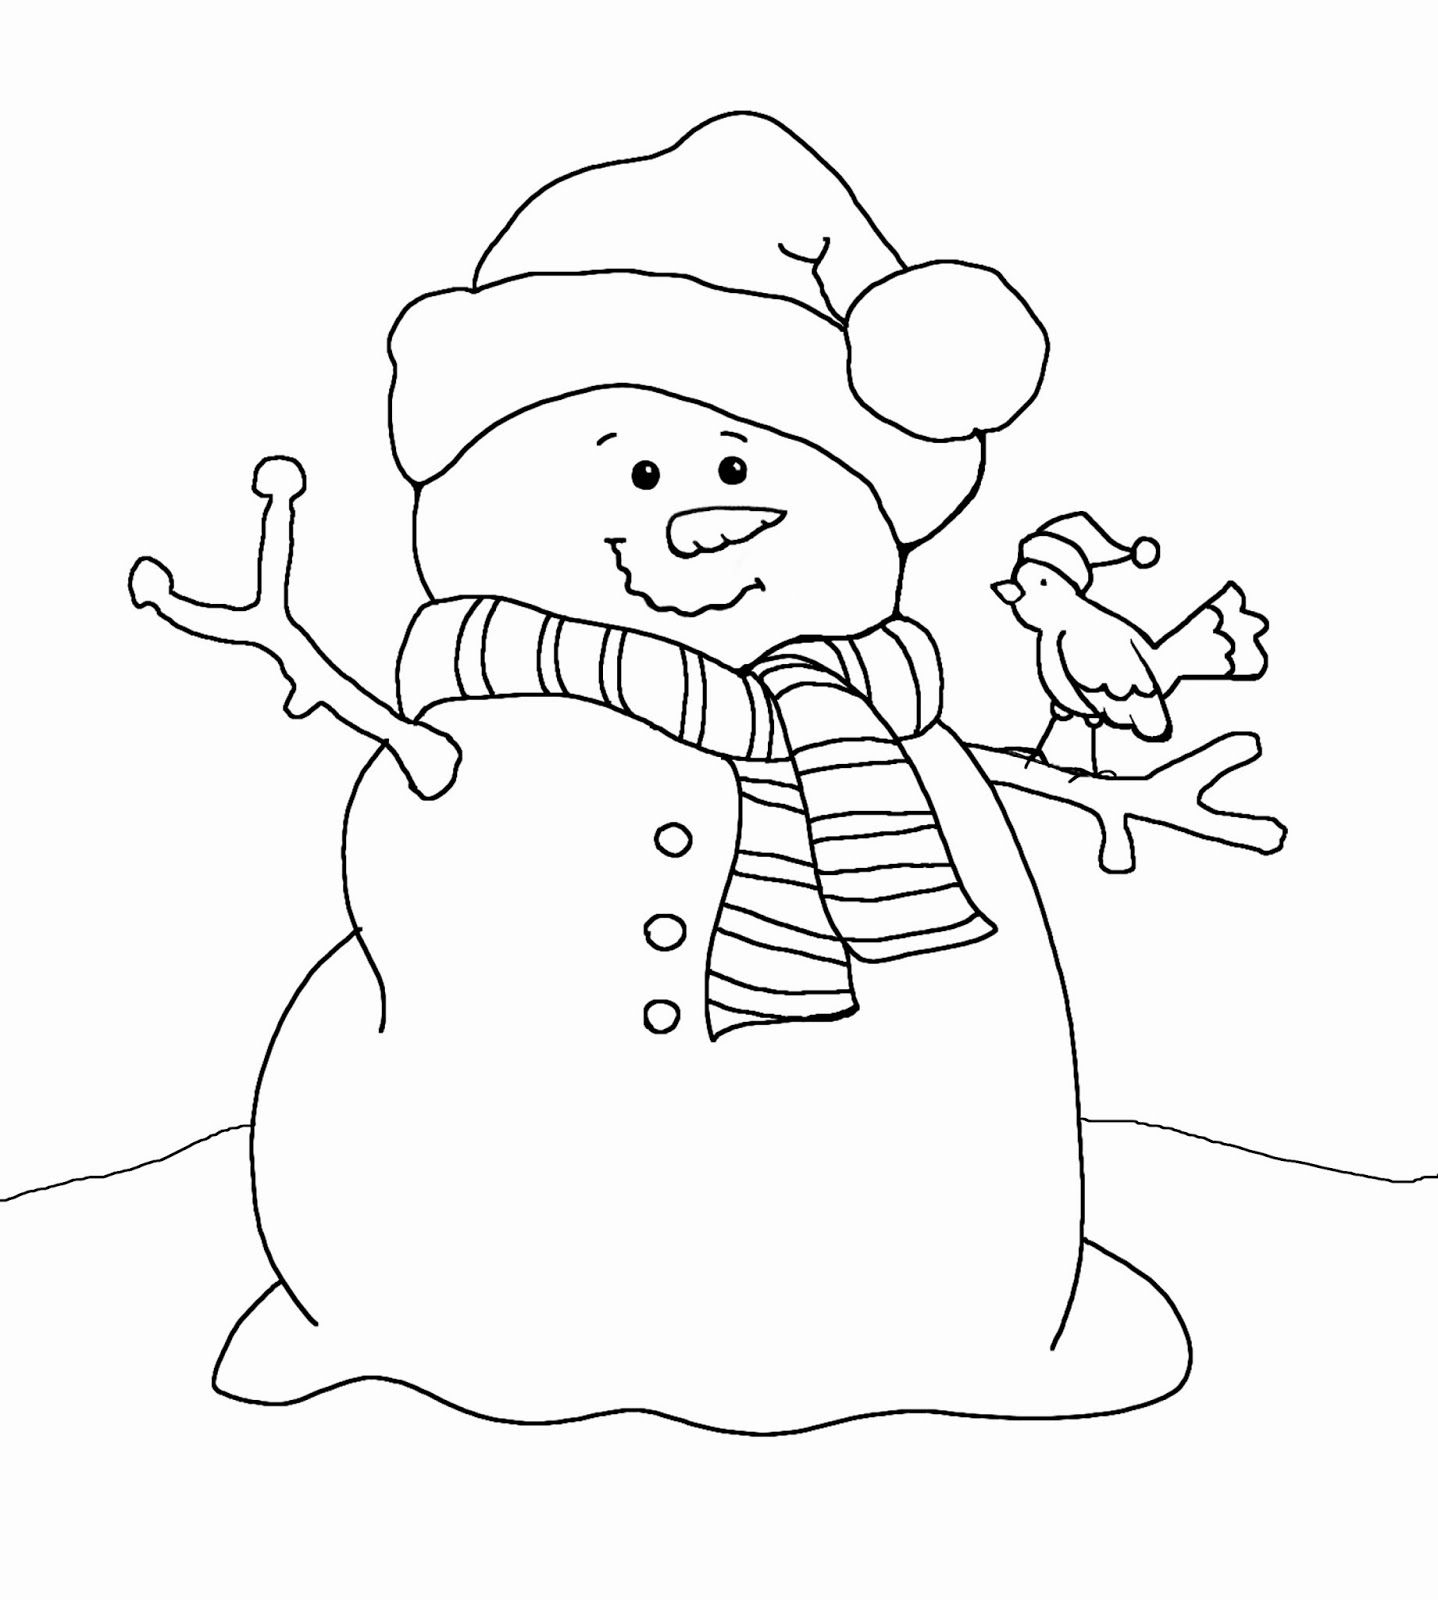 Snowman coloring pages free christmas snowmen let 39 s for Free coloring pages snowman